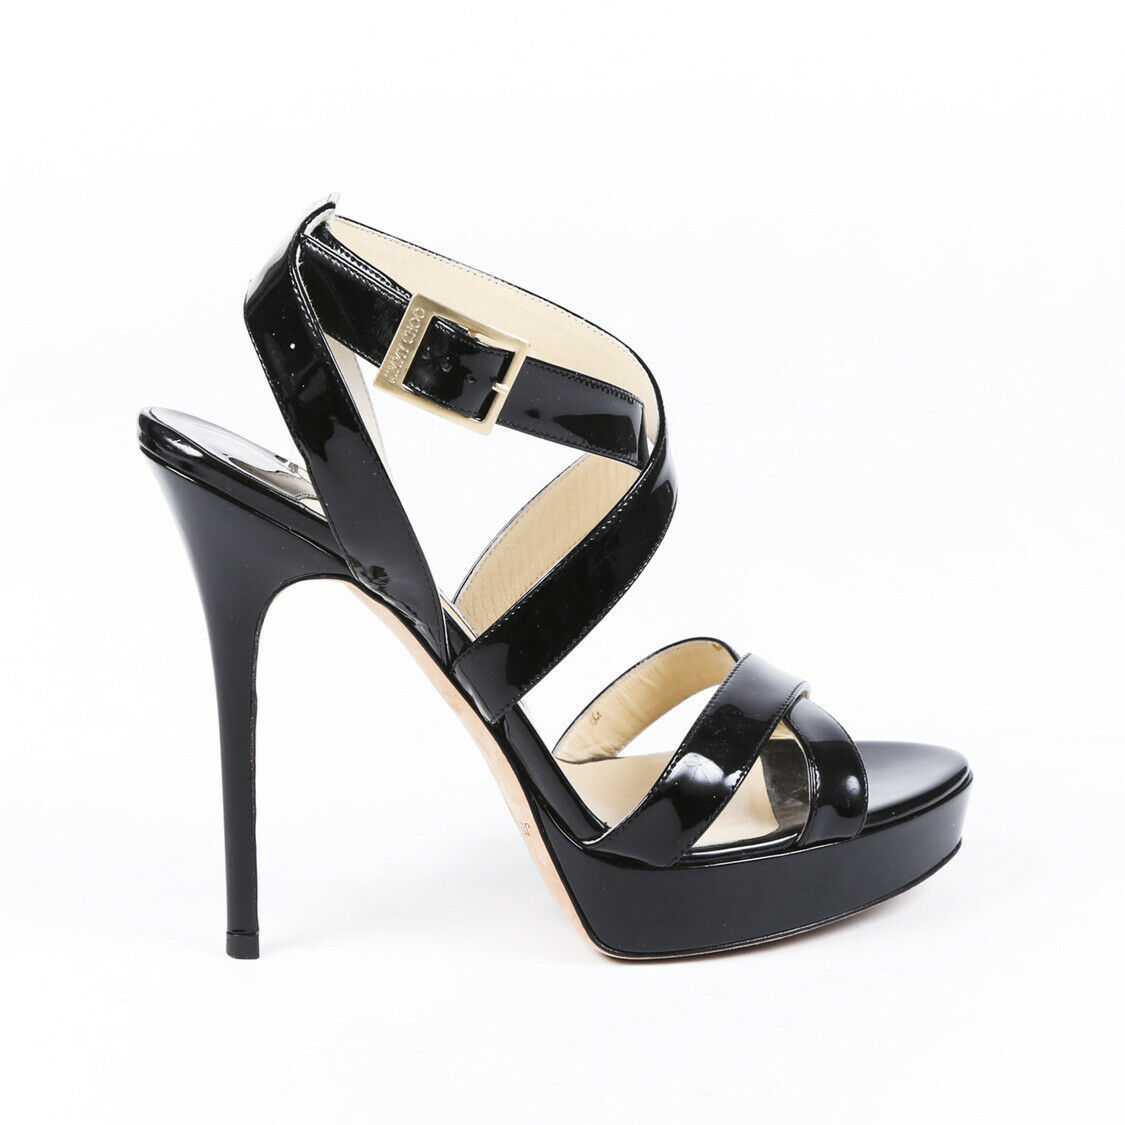 Primary image for Jimmy Choo Louisa Patent Leather Platform Sandals SZ 40